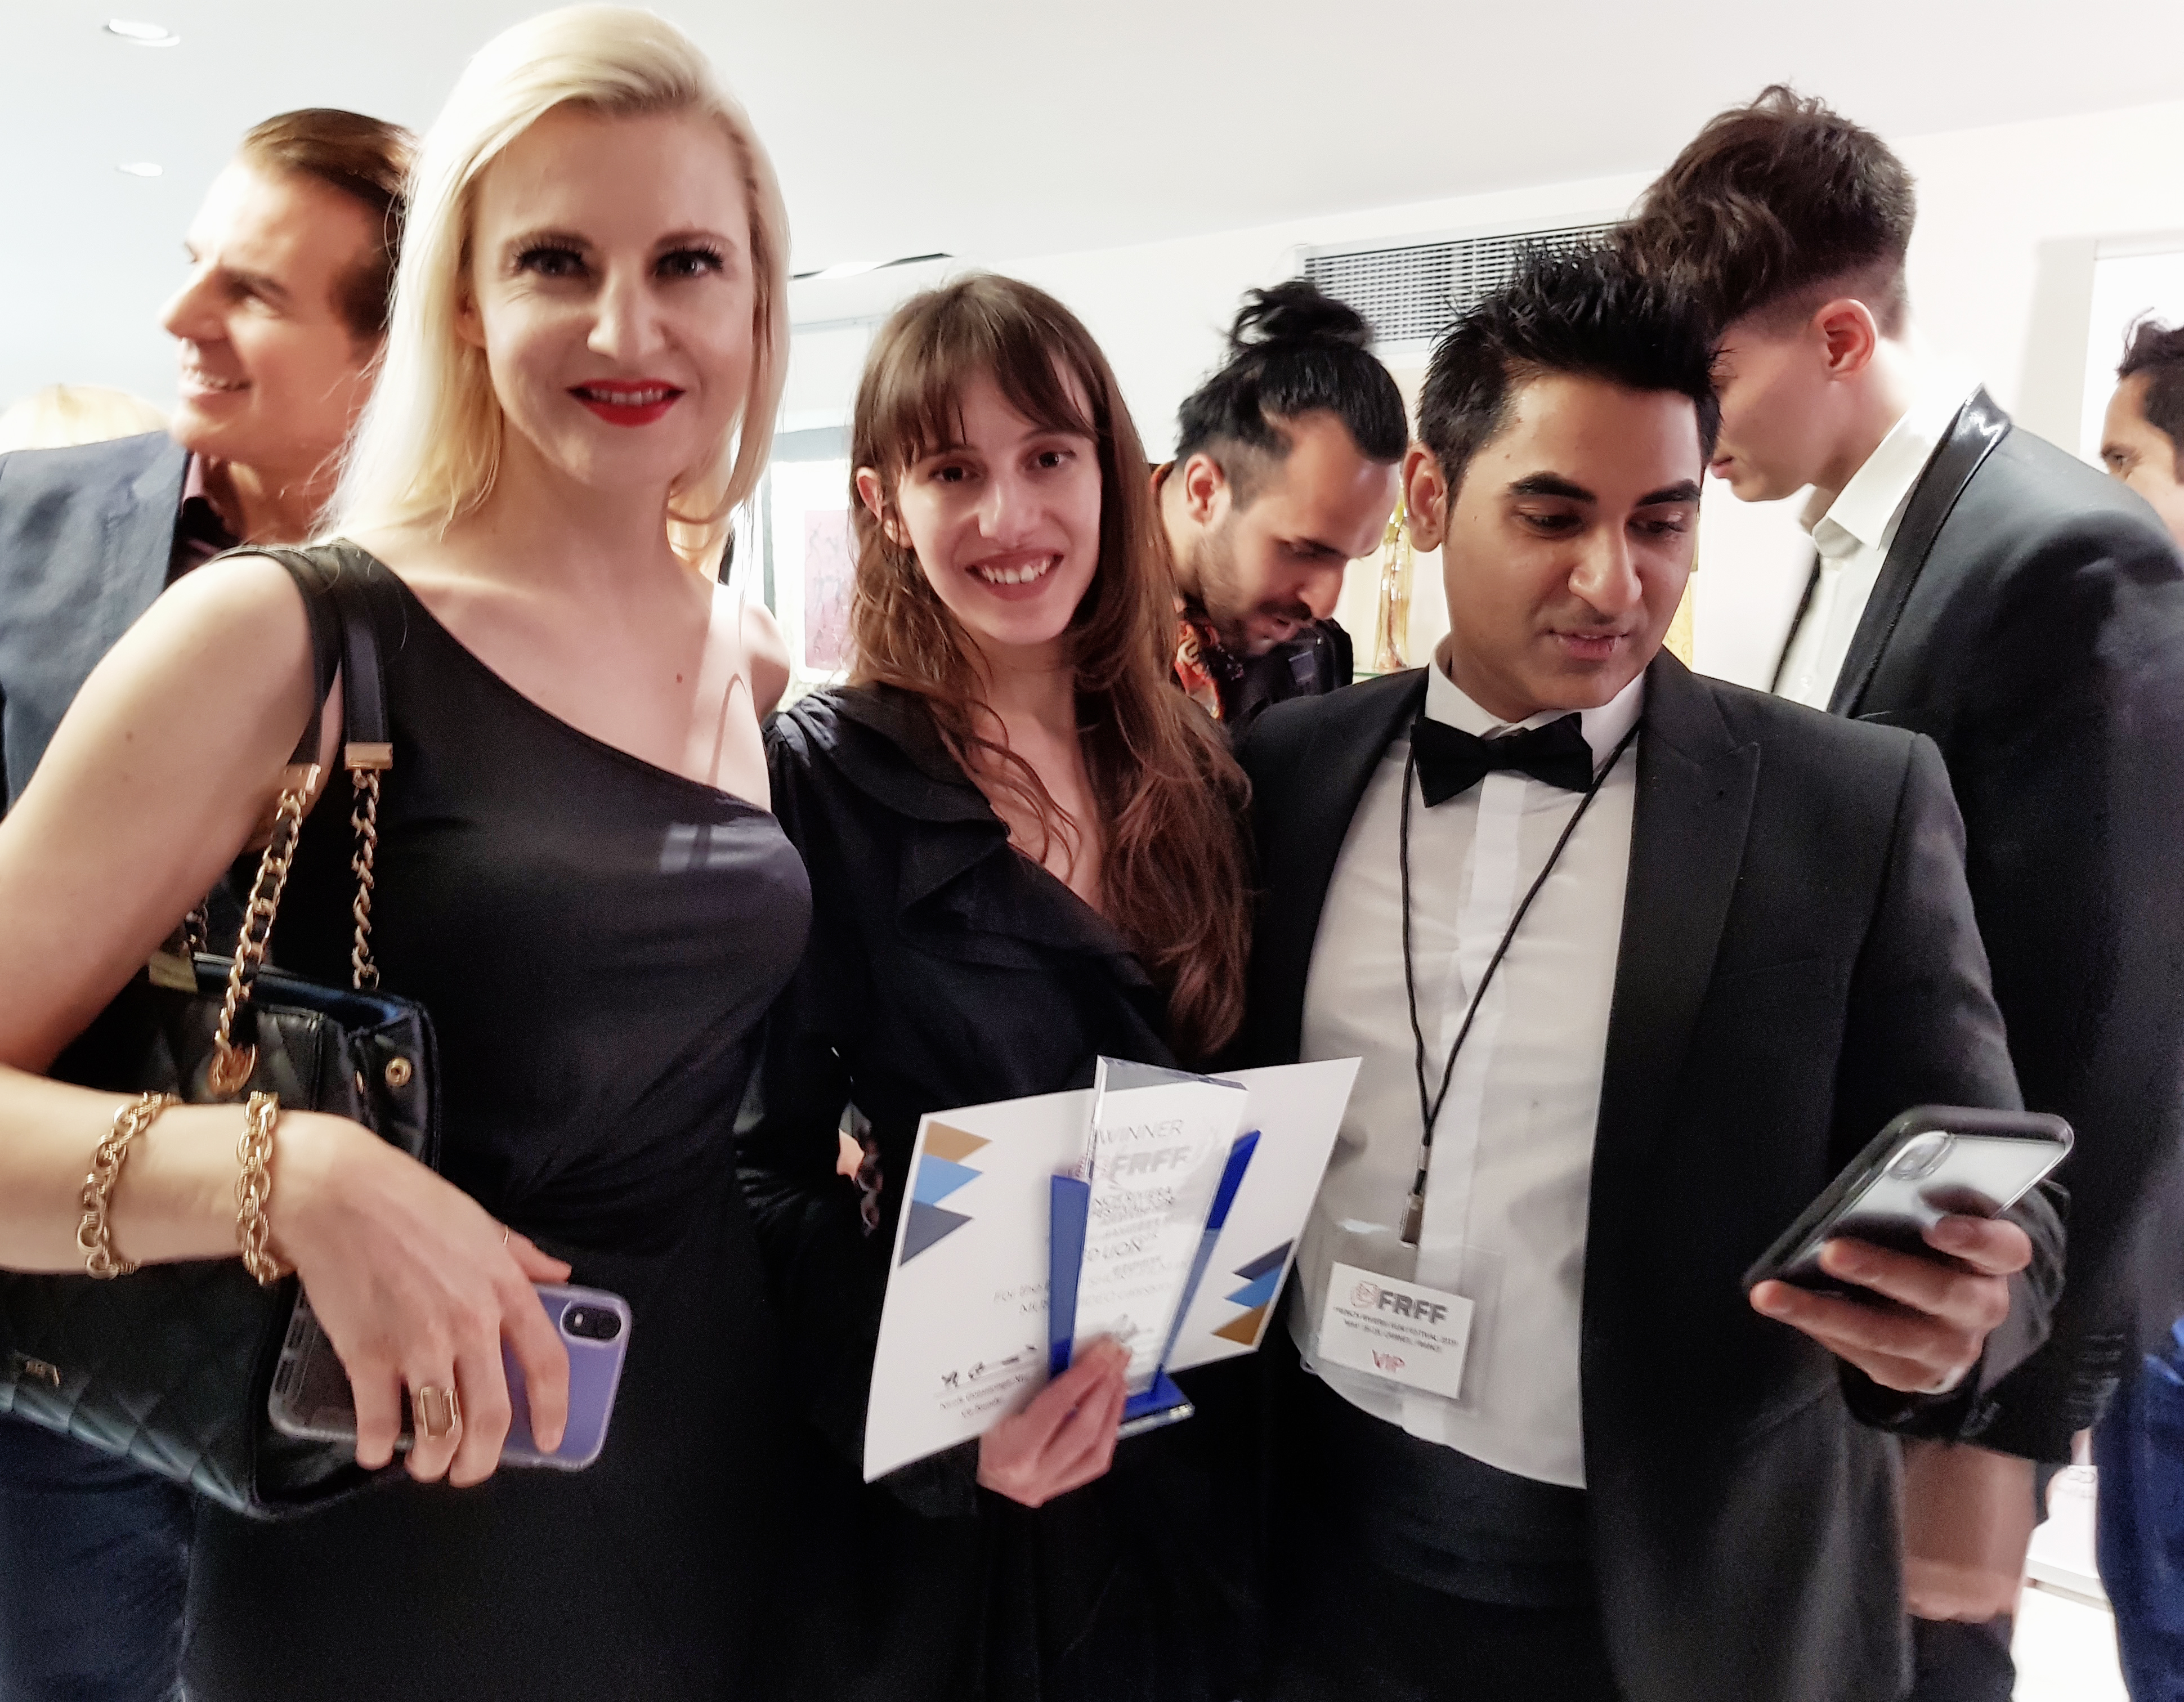 Best Actor Vincent De Paul, Host and Producer, Laura Powers. Director, Olivia Hadiioannou, Director, Amir Zargara Producer Samir Srivastava